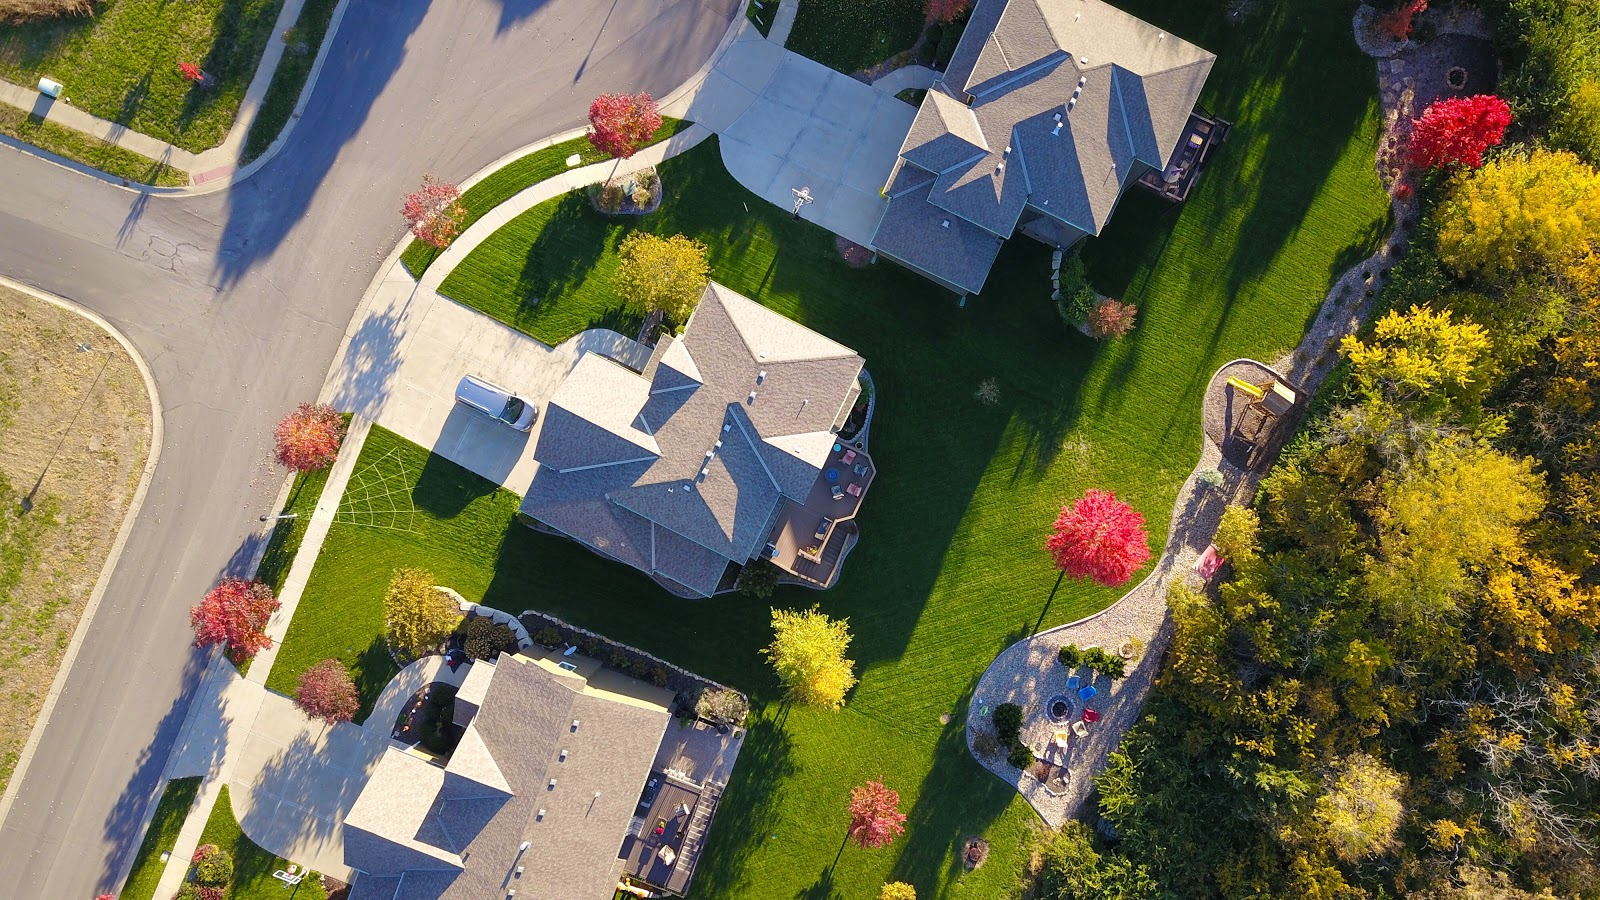 aerial-photography-aerial-shot-aerial-view-1546166.jpg